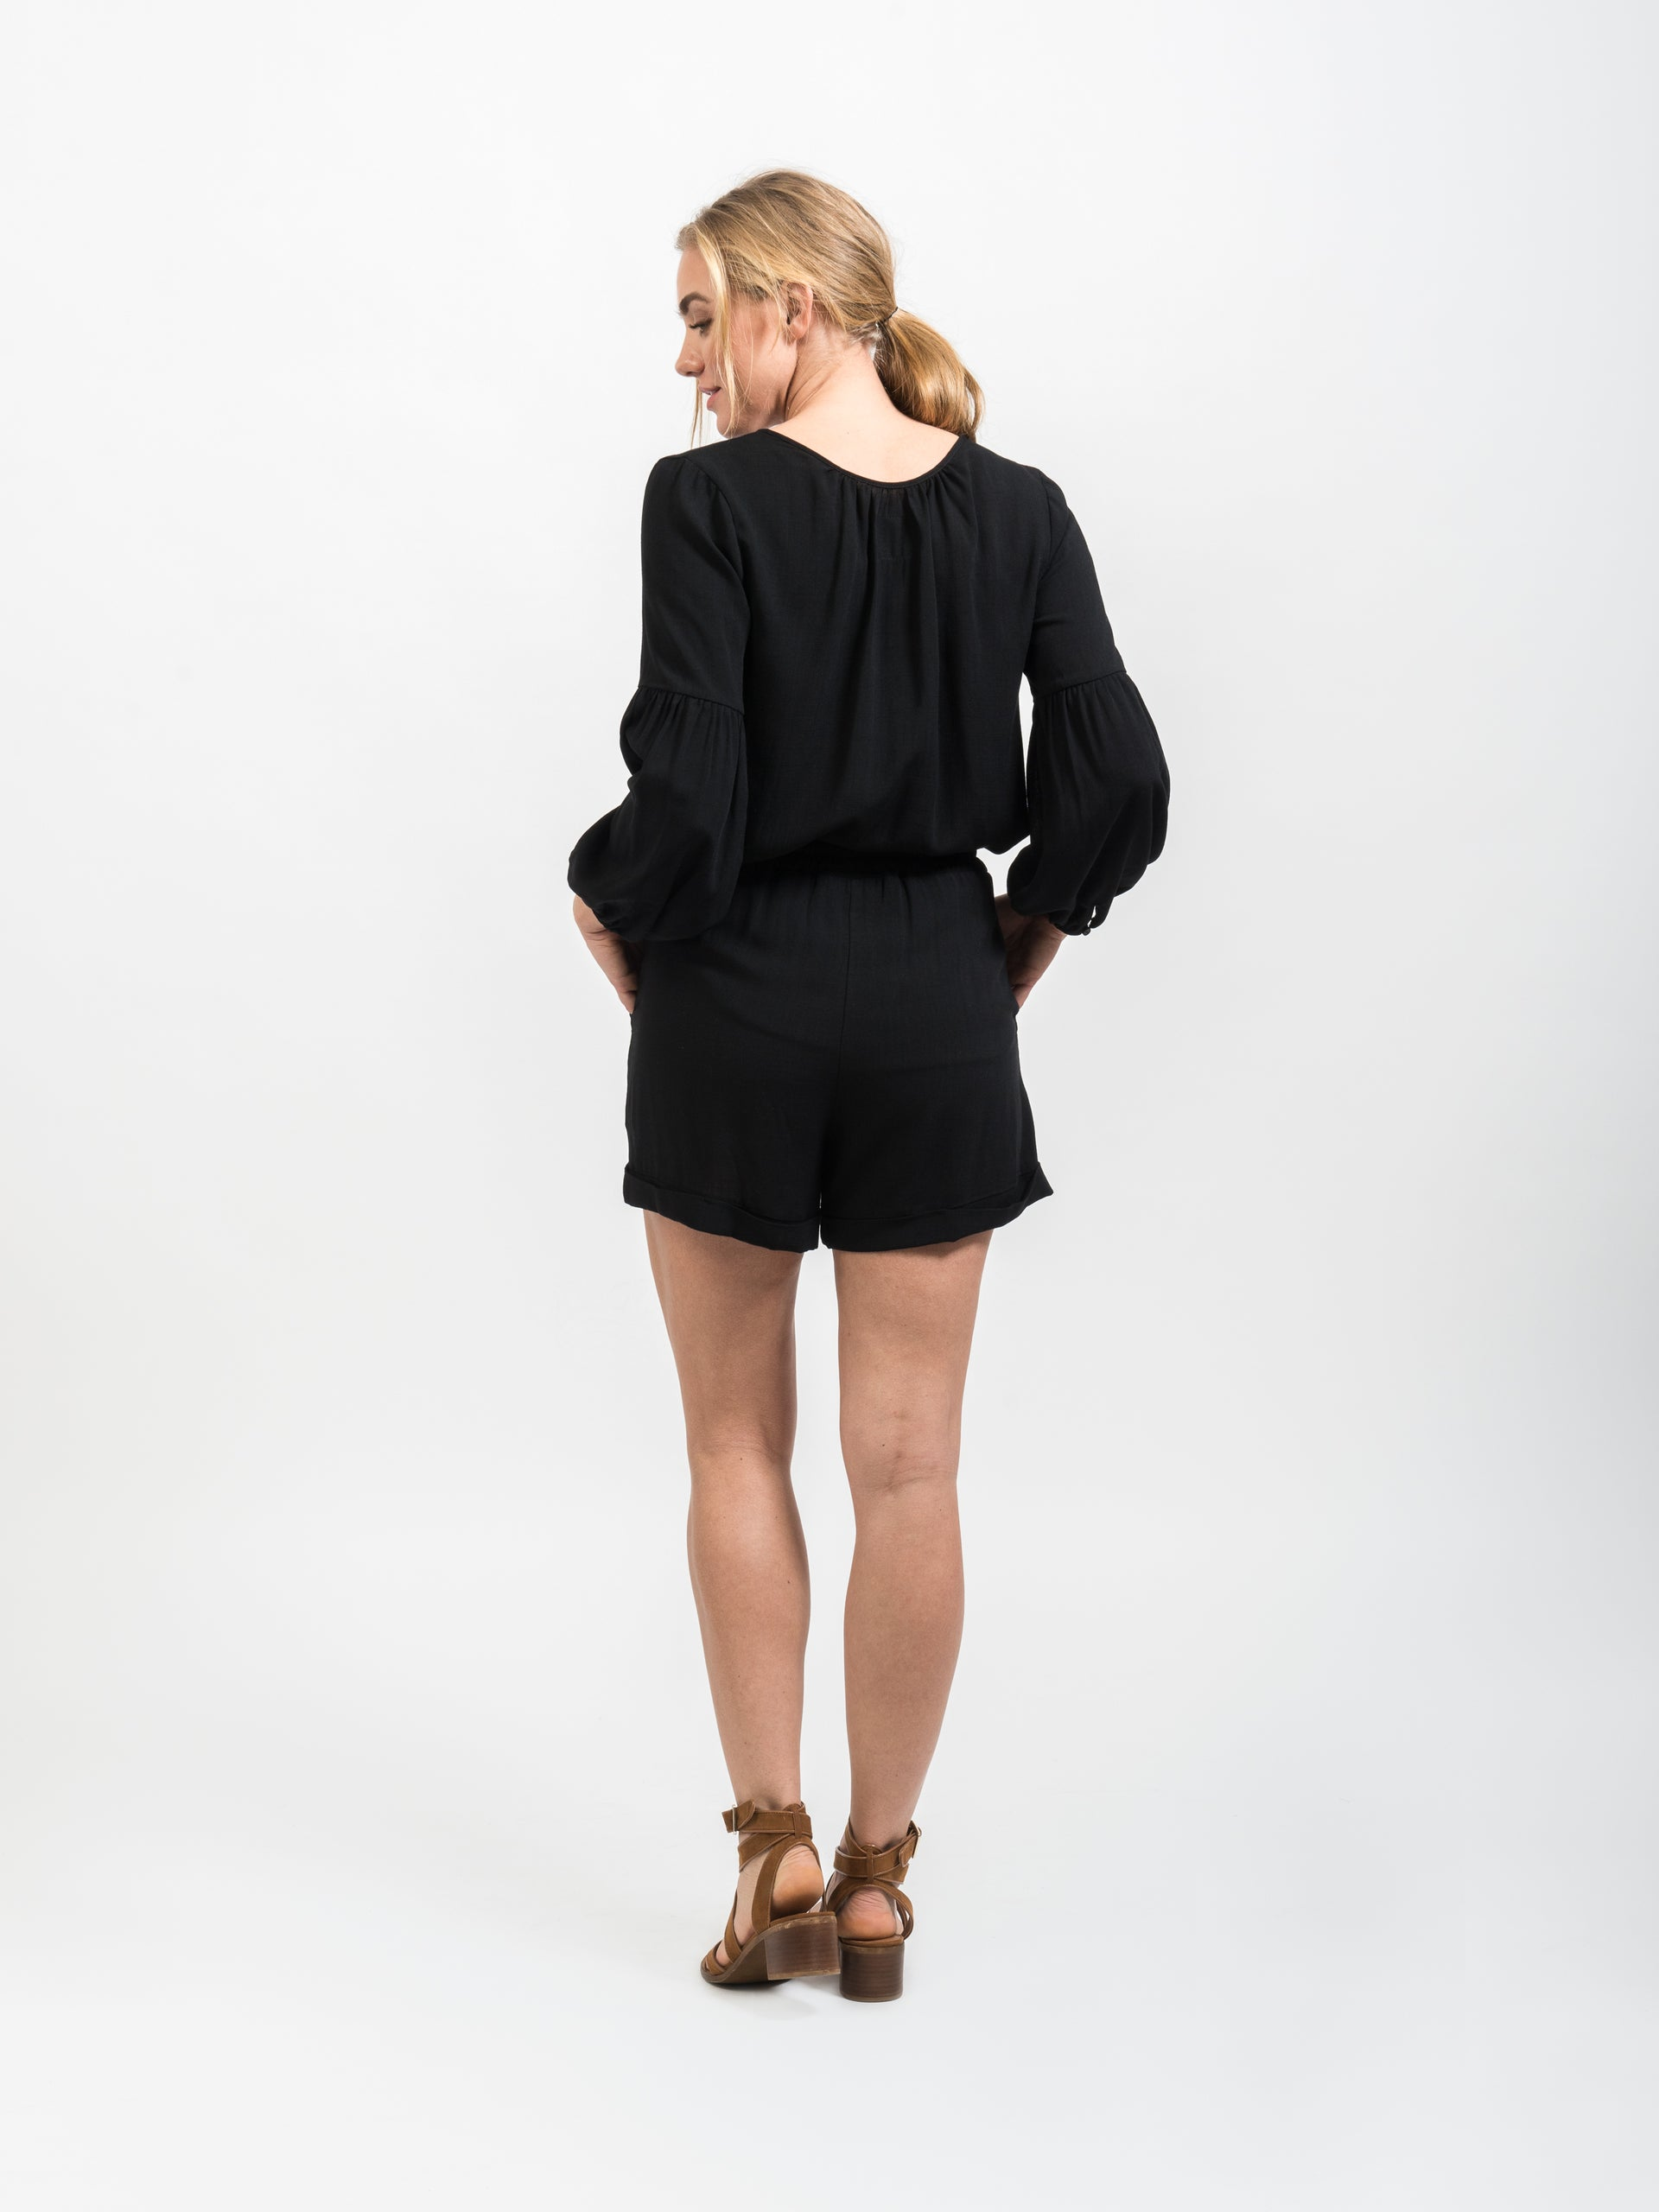 Sunday Best Shorts - Black